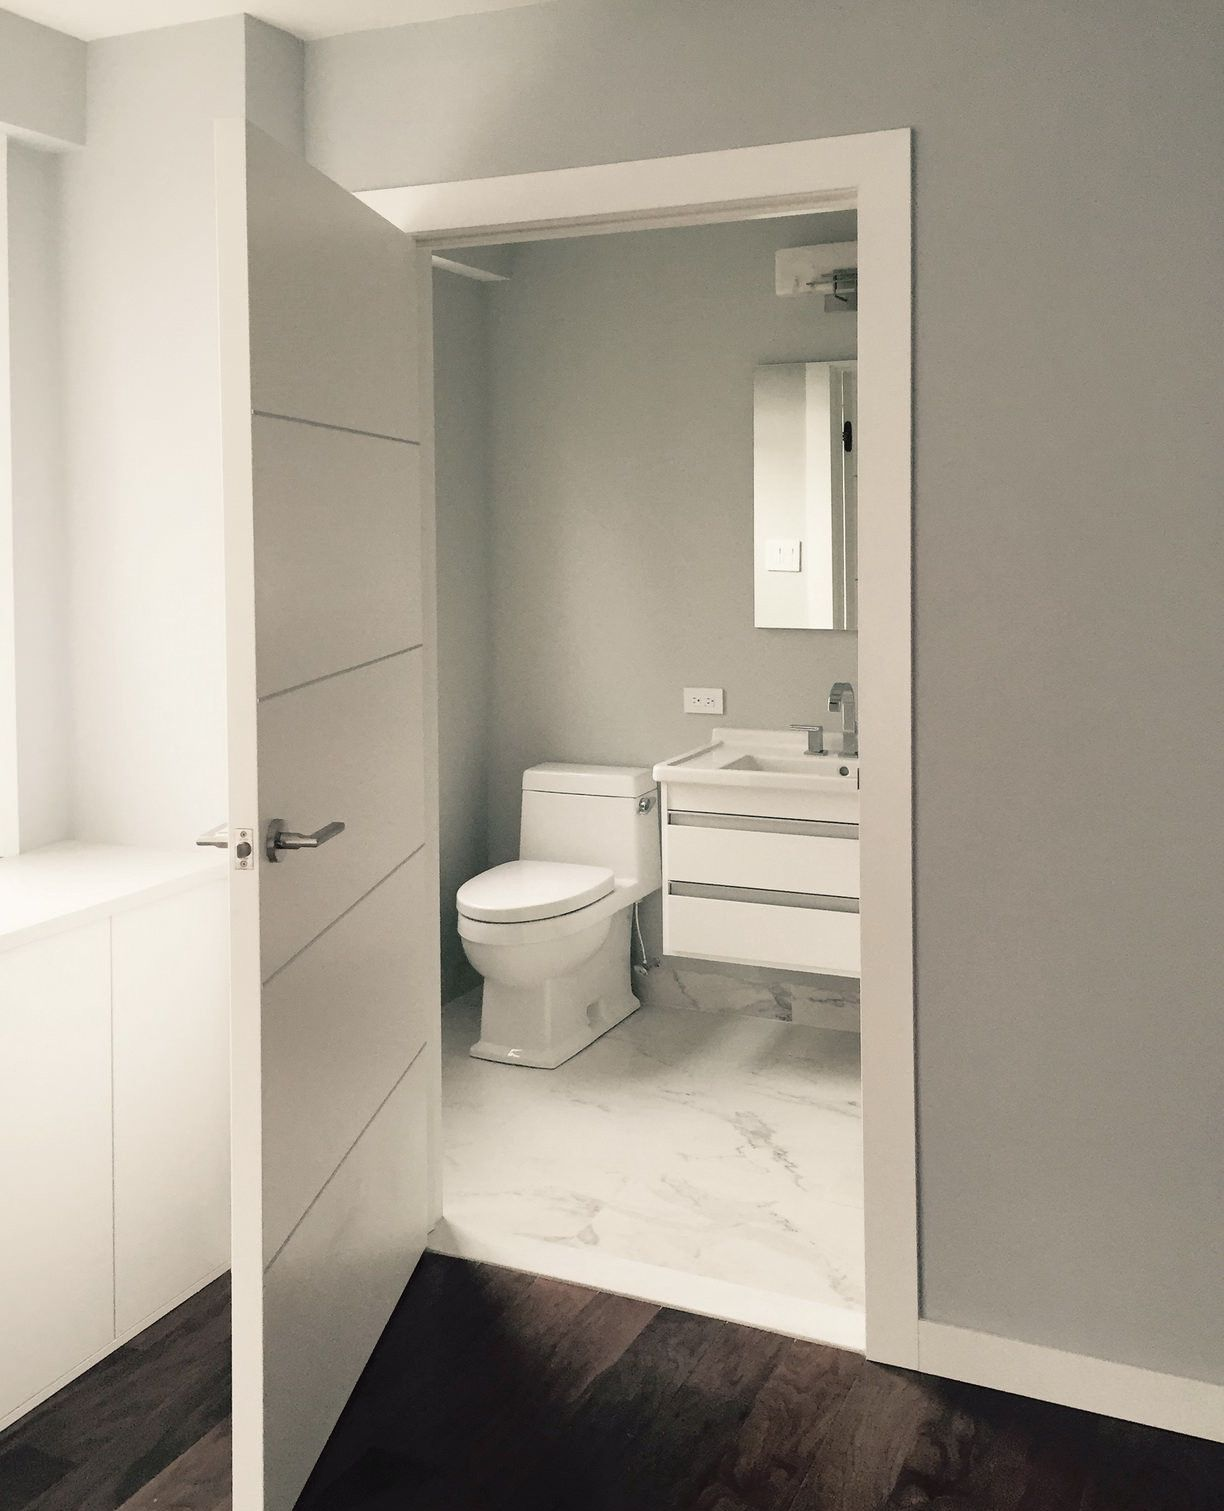 Pvc interior doors for bathroom and toilet